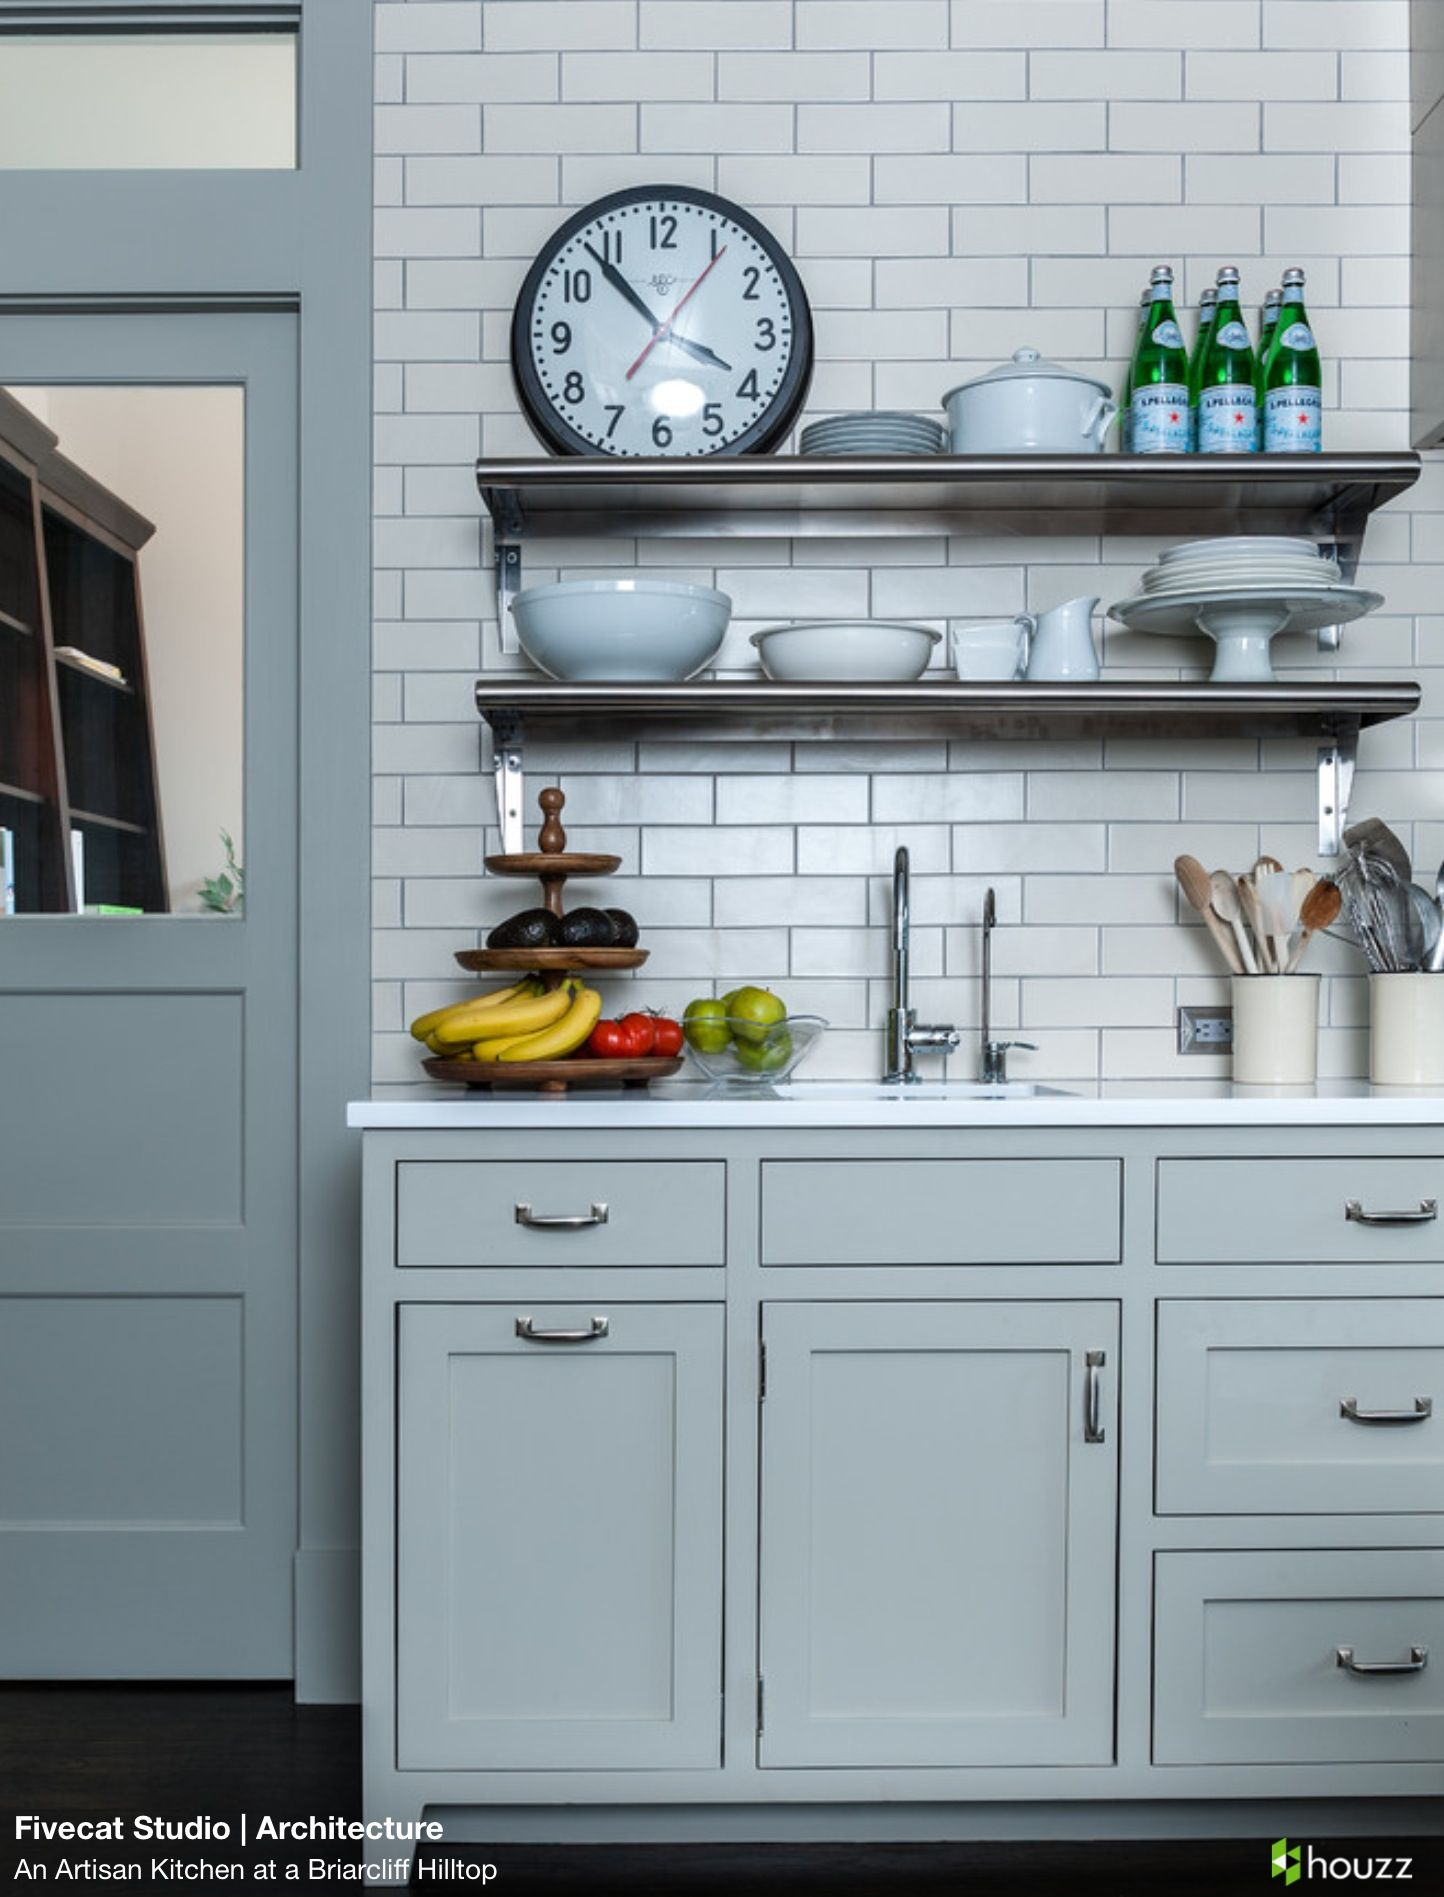 Pin by D Bams on Kitchen | Pinterest | Space kitchen, Kitchens and ...